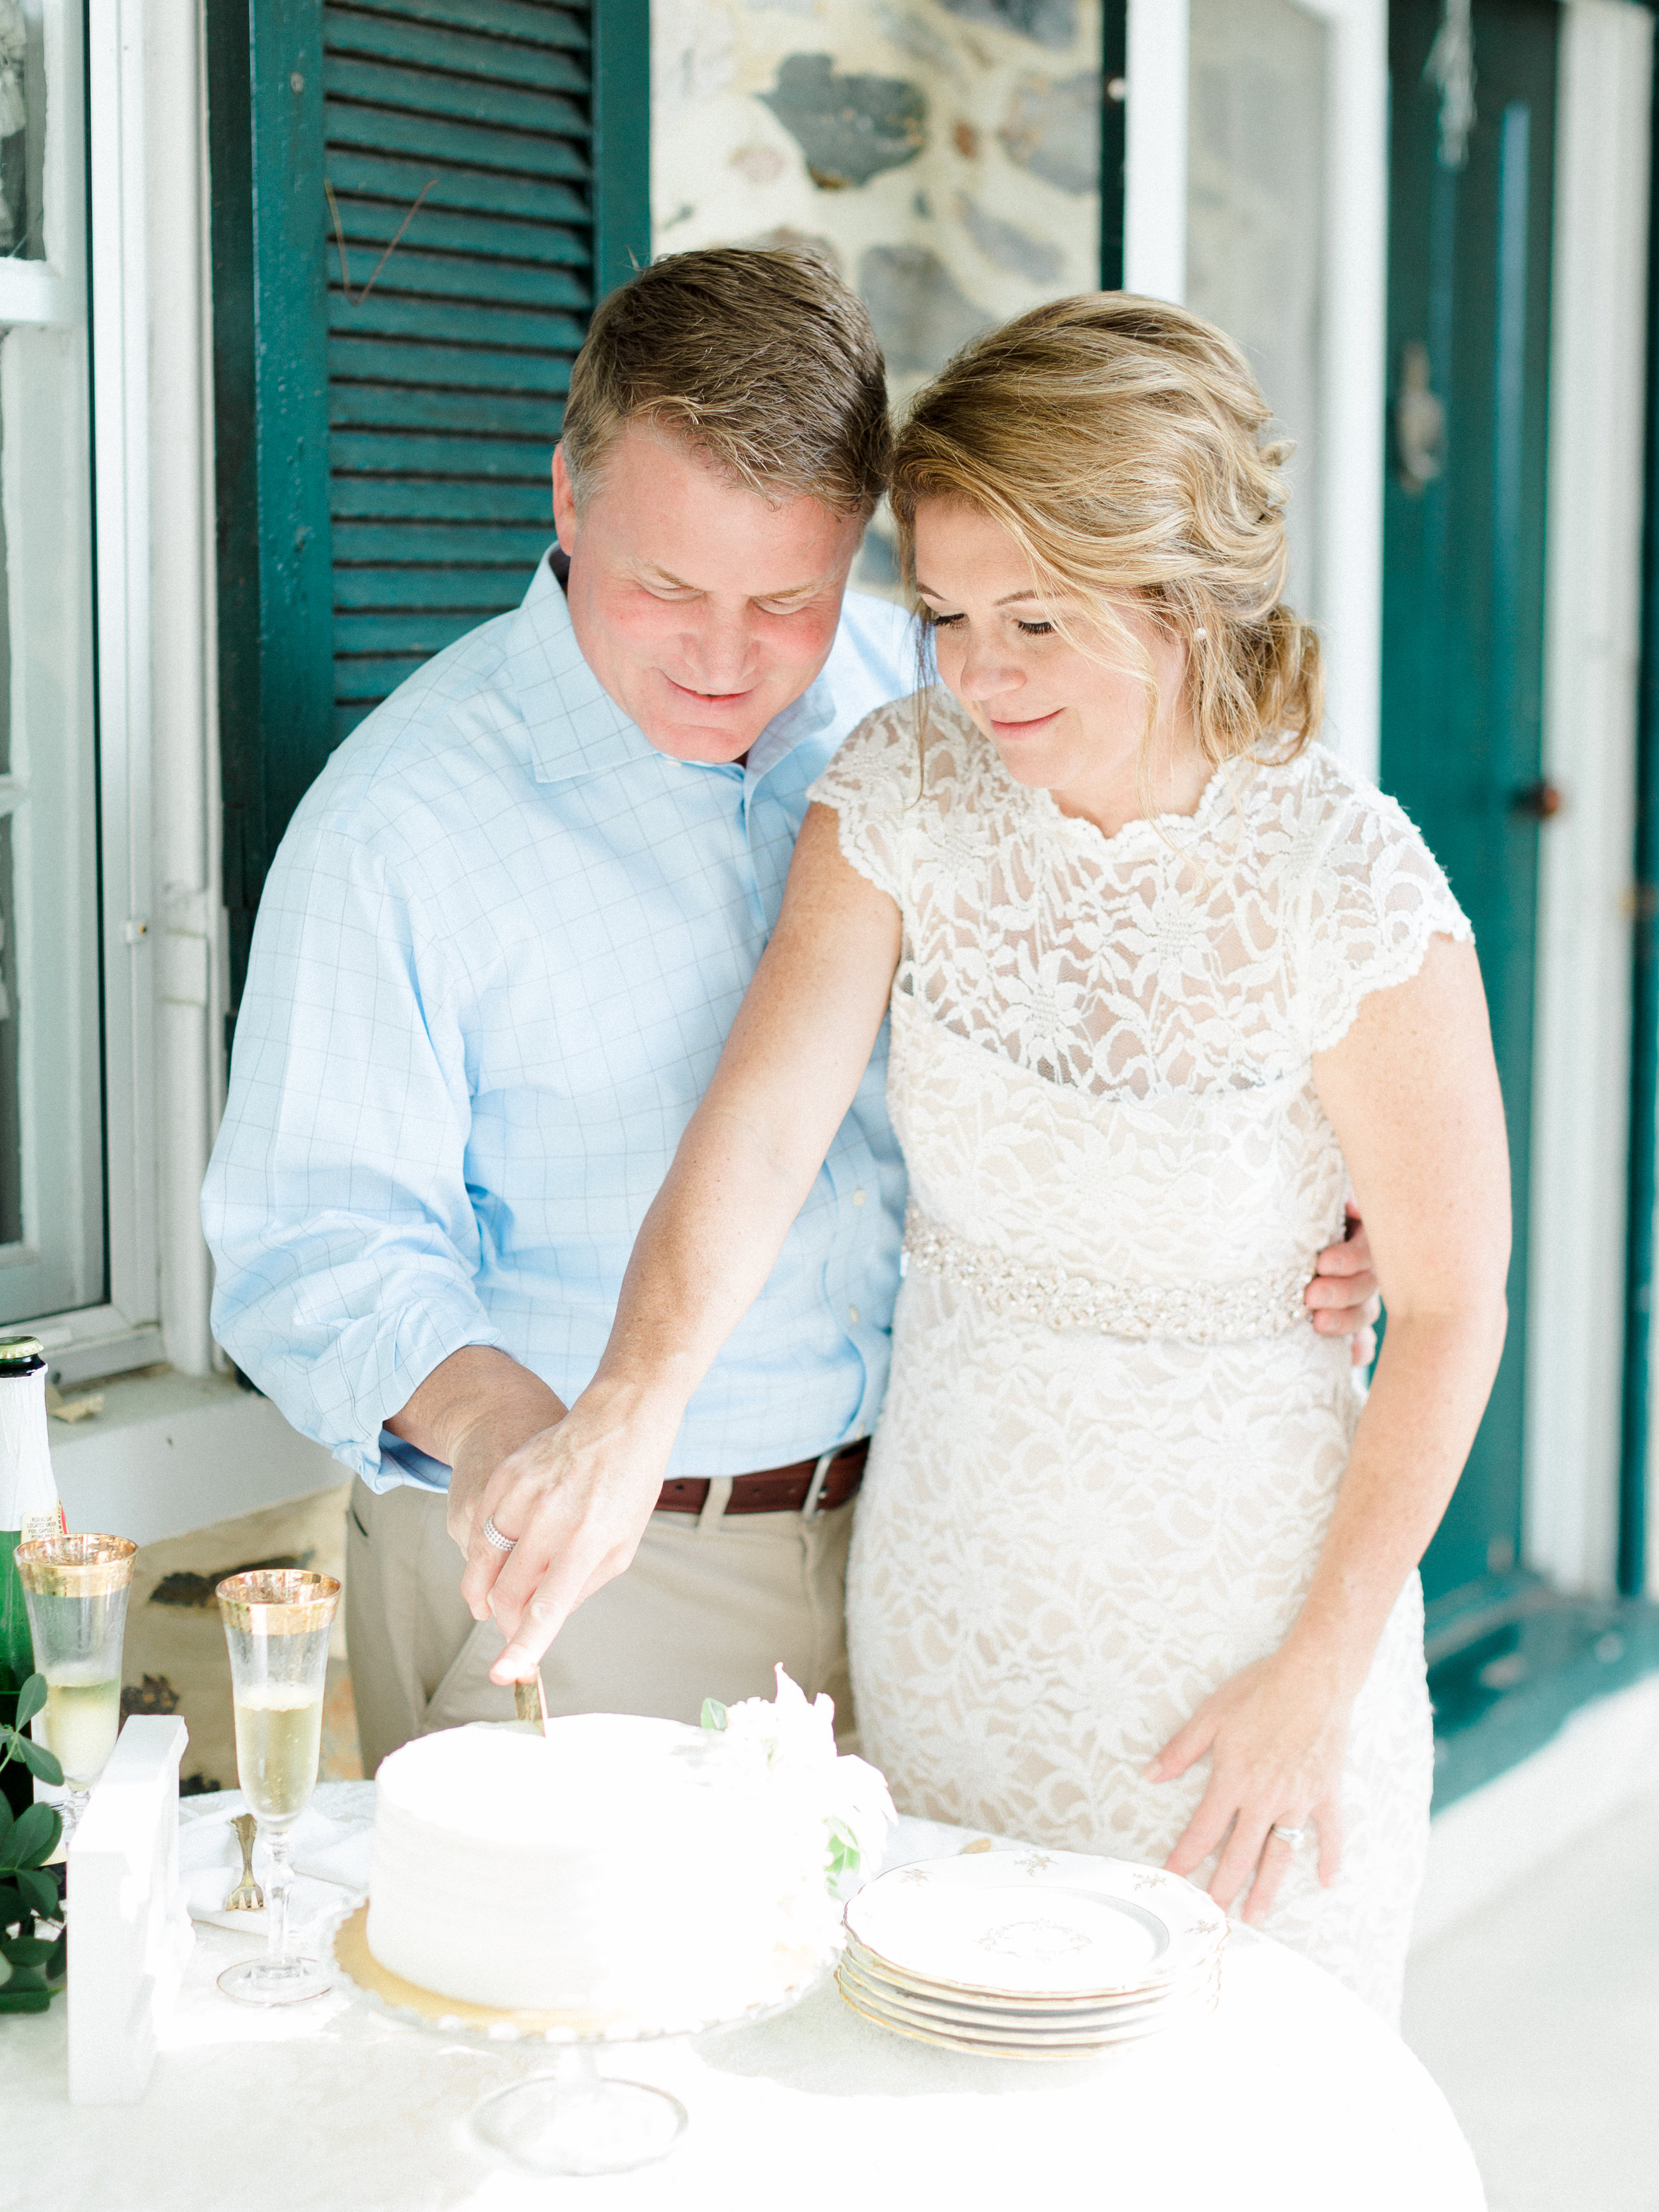 The Porch - Angie & Shaun chose to do a small cake cutting on the back porch. Such a sweet moment in the perfect place!